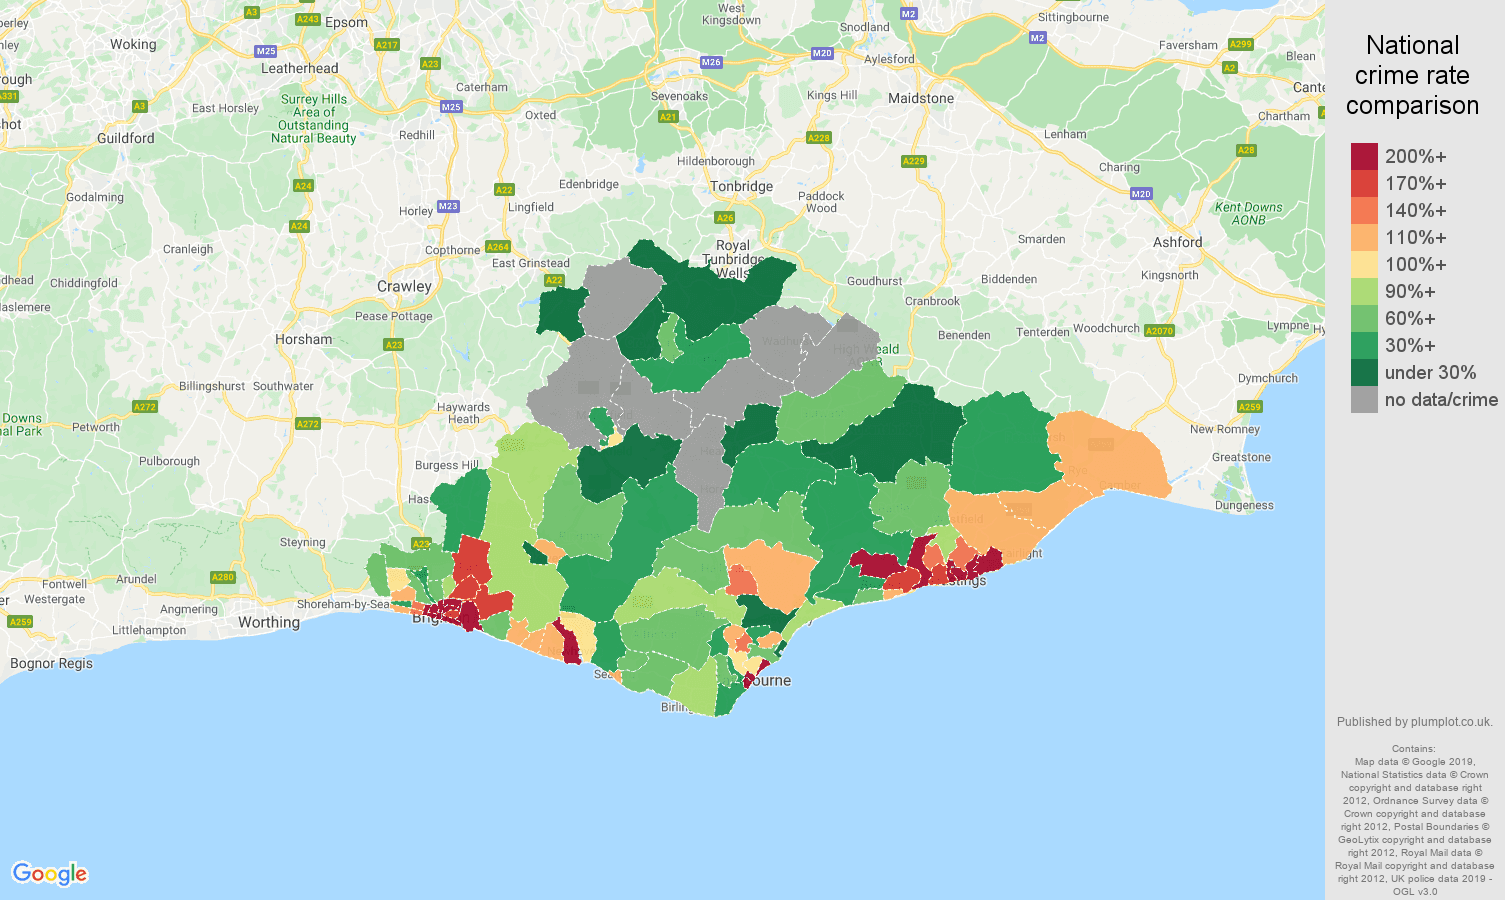 East Sussex possession of weapons crime rate comparison map